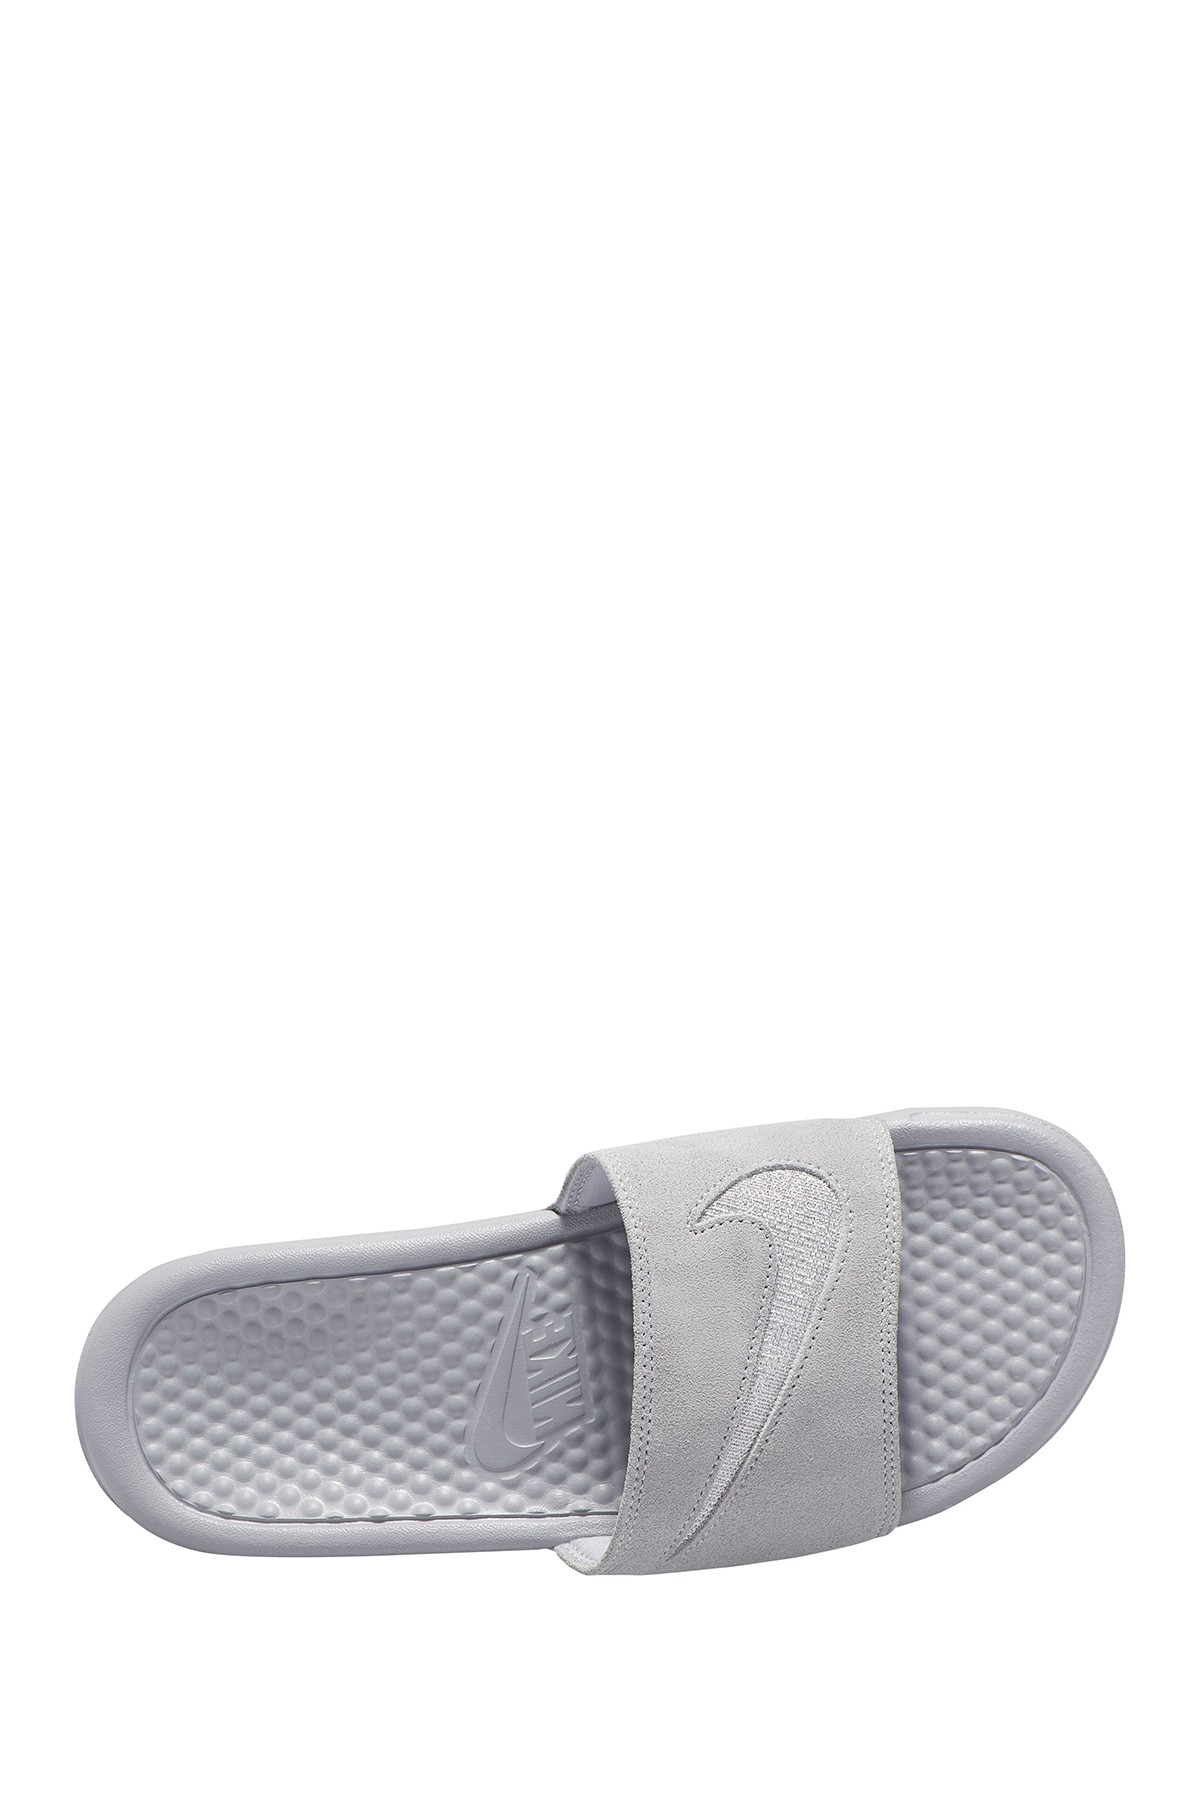 [AQ8651-002] W NIKE BENASSI JDI LEATHER SE